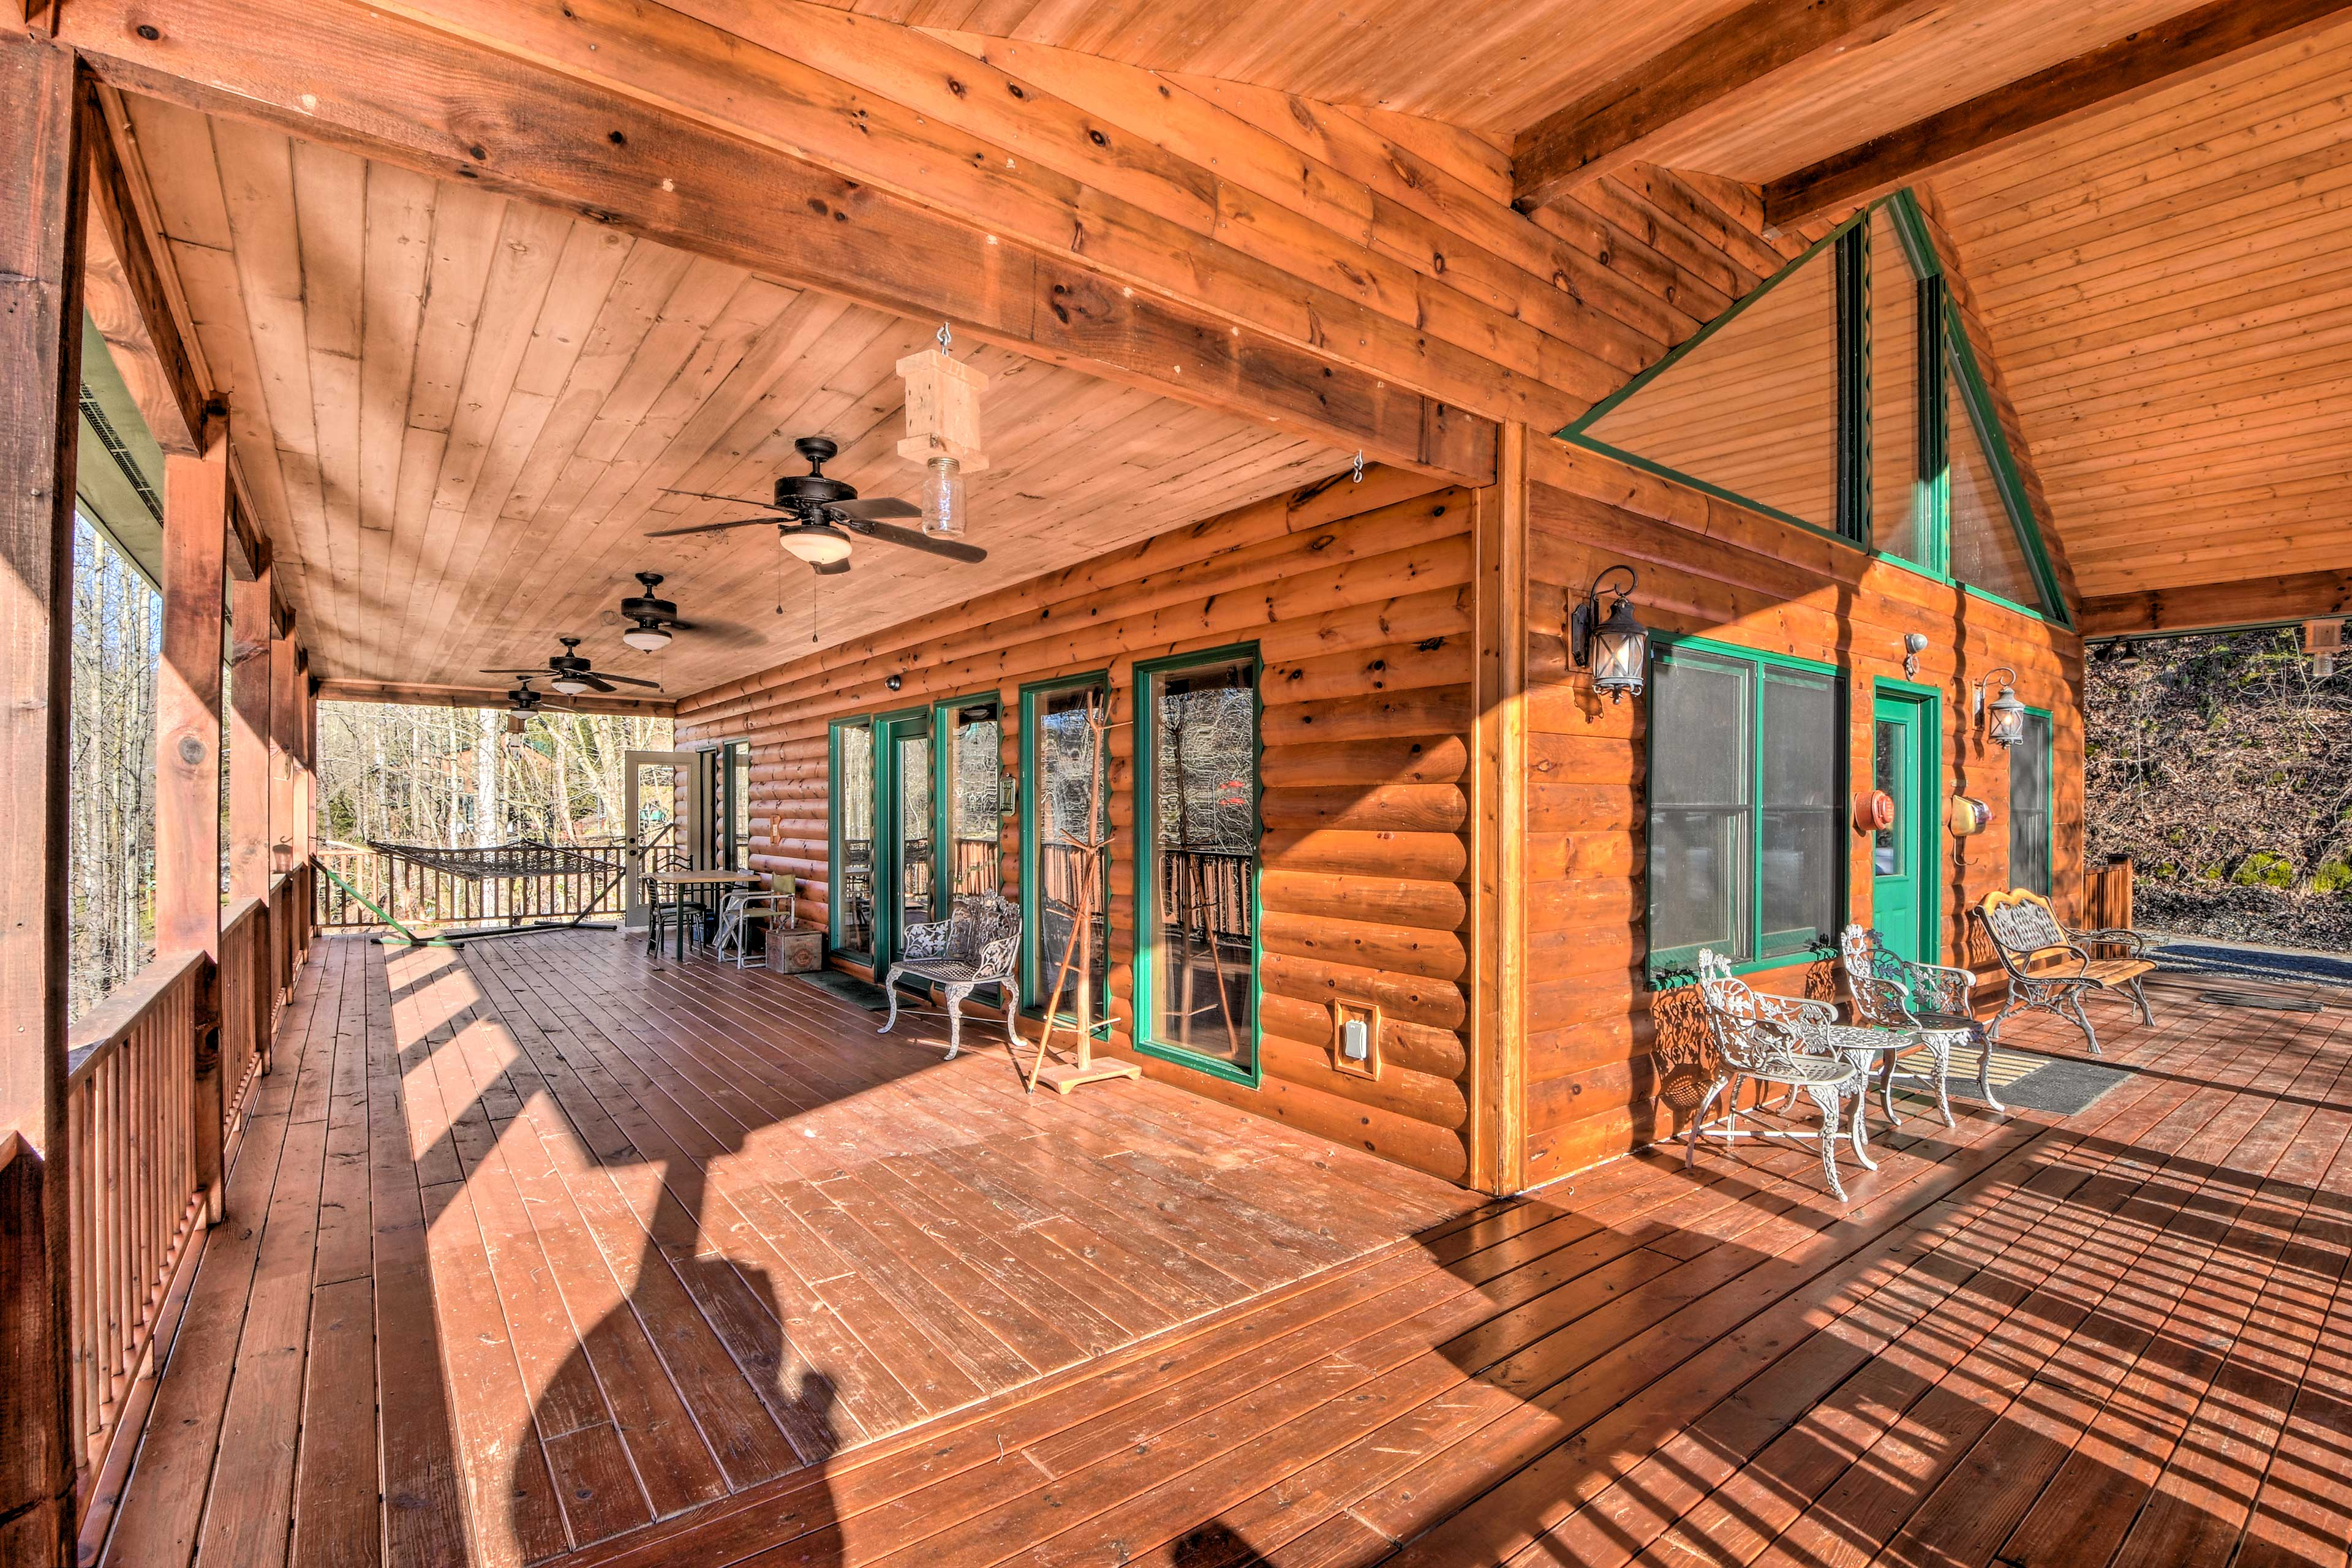 Bring your morning cup of coffee outside to the wraparound deck.